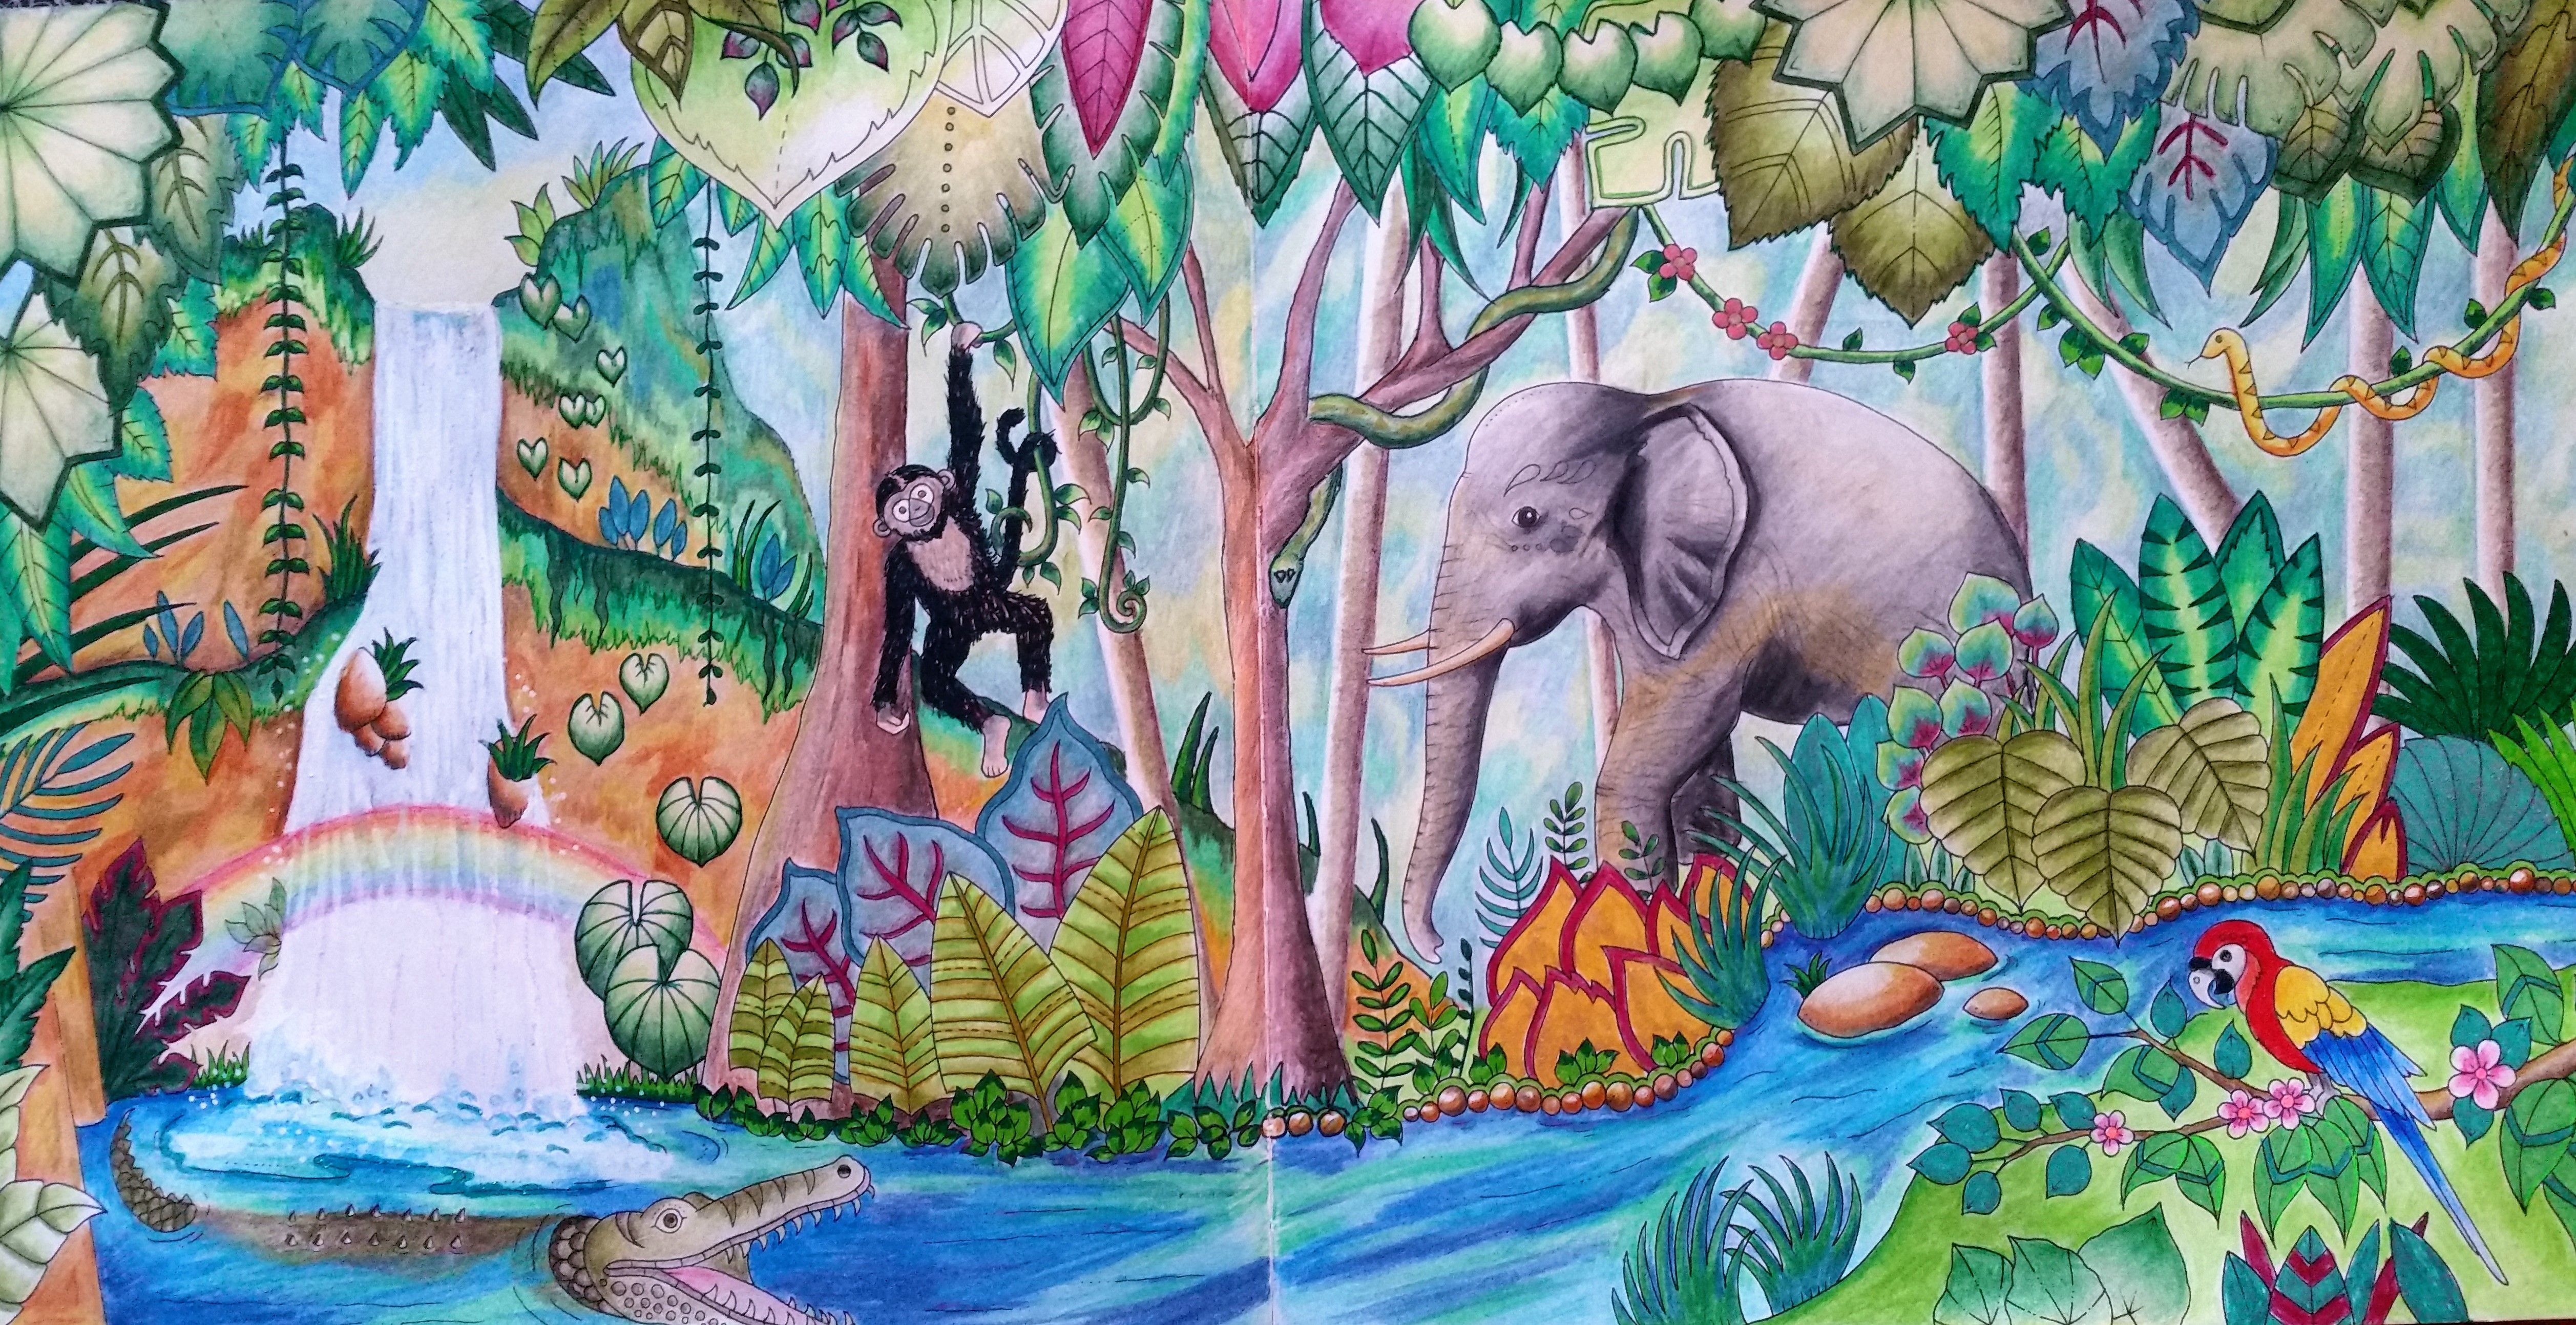 Elephant And Waterfall From Magical Jungle Coloured By Bronwyn Dargaville Johanna Basford Coloring Basford Coloring Johanna Basford Coloring Book